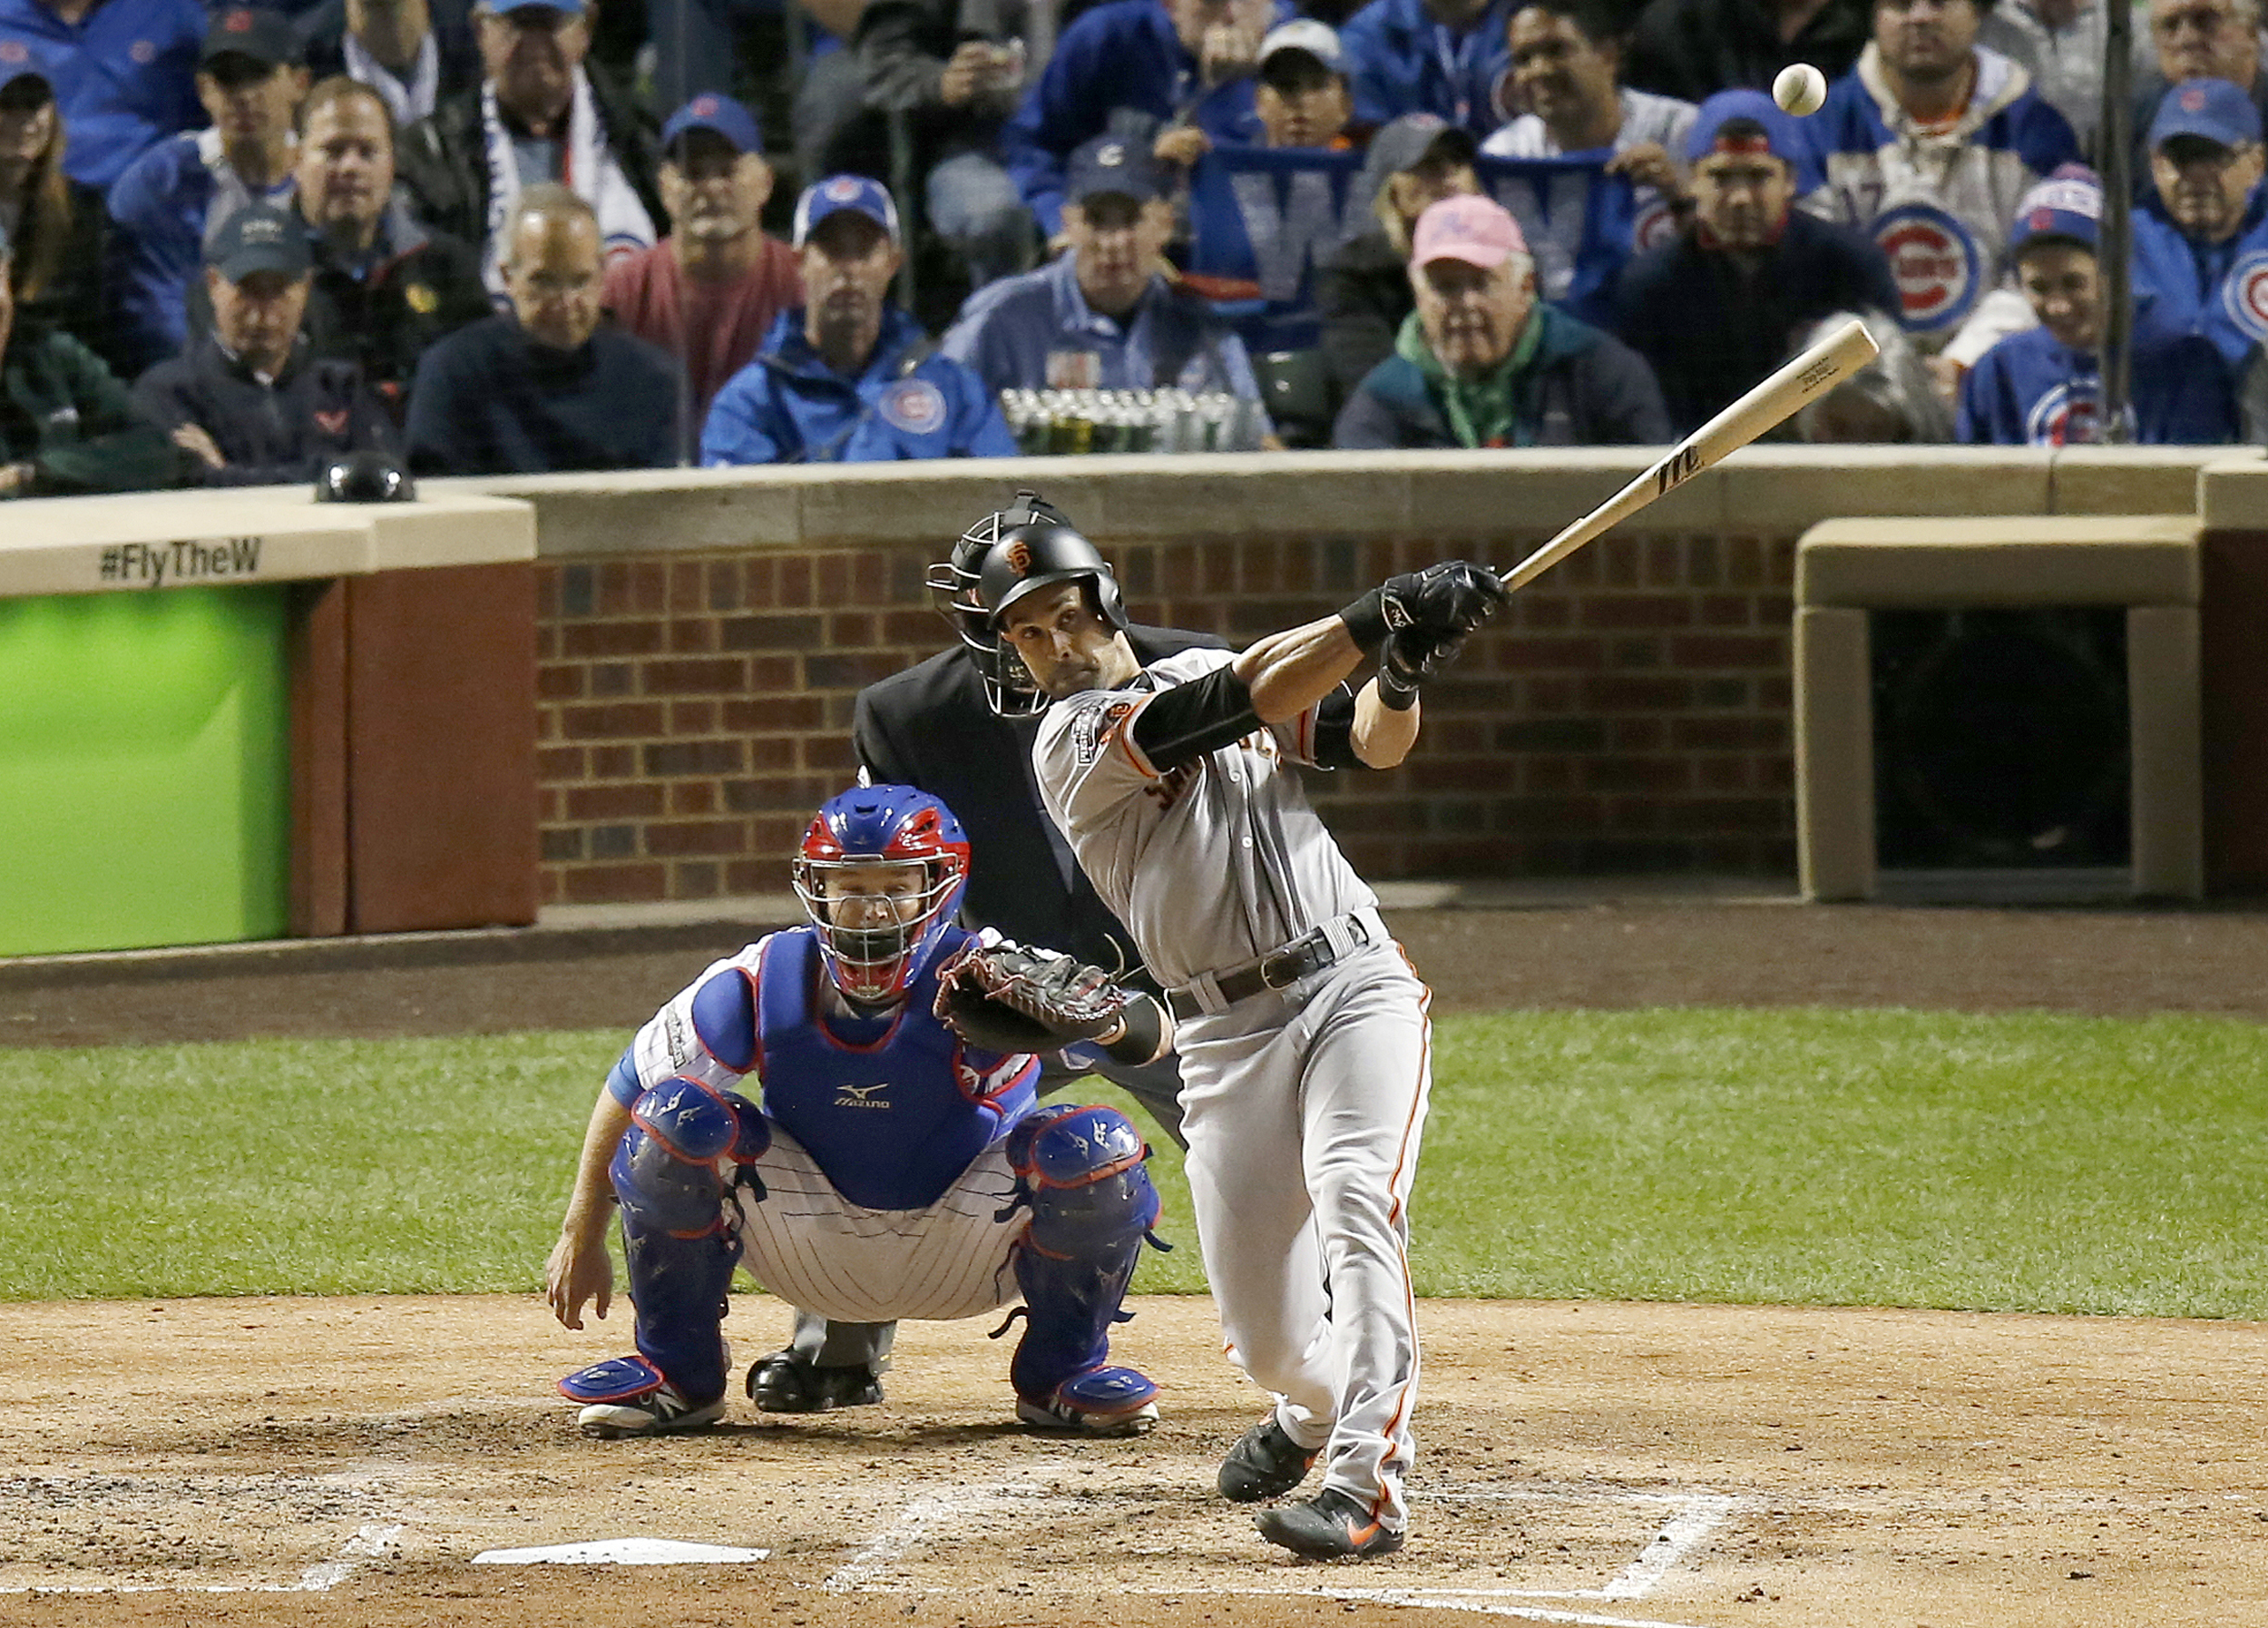 San Francisco Giants' Angel Pagan hits a double in the fourth inning of Game 1 of baseball's National League Division Series against the Chicago Cubs, Friday, Oct. 7, 2016, in Chicago. (AP Photo/Charles Rex Arbogast)